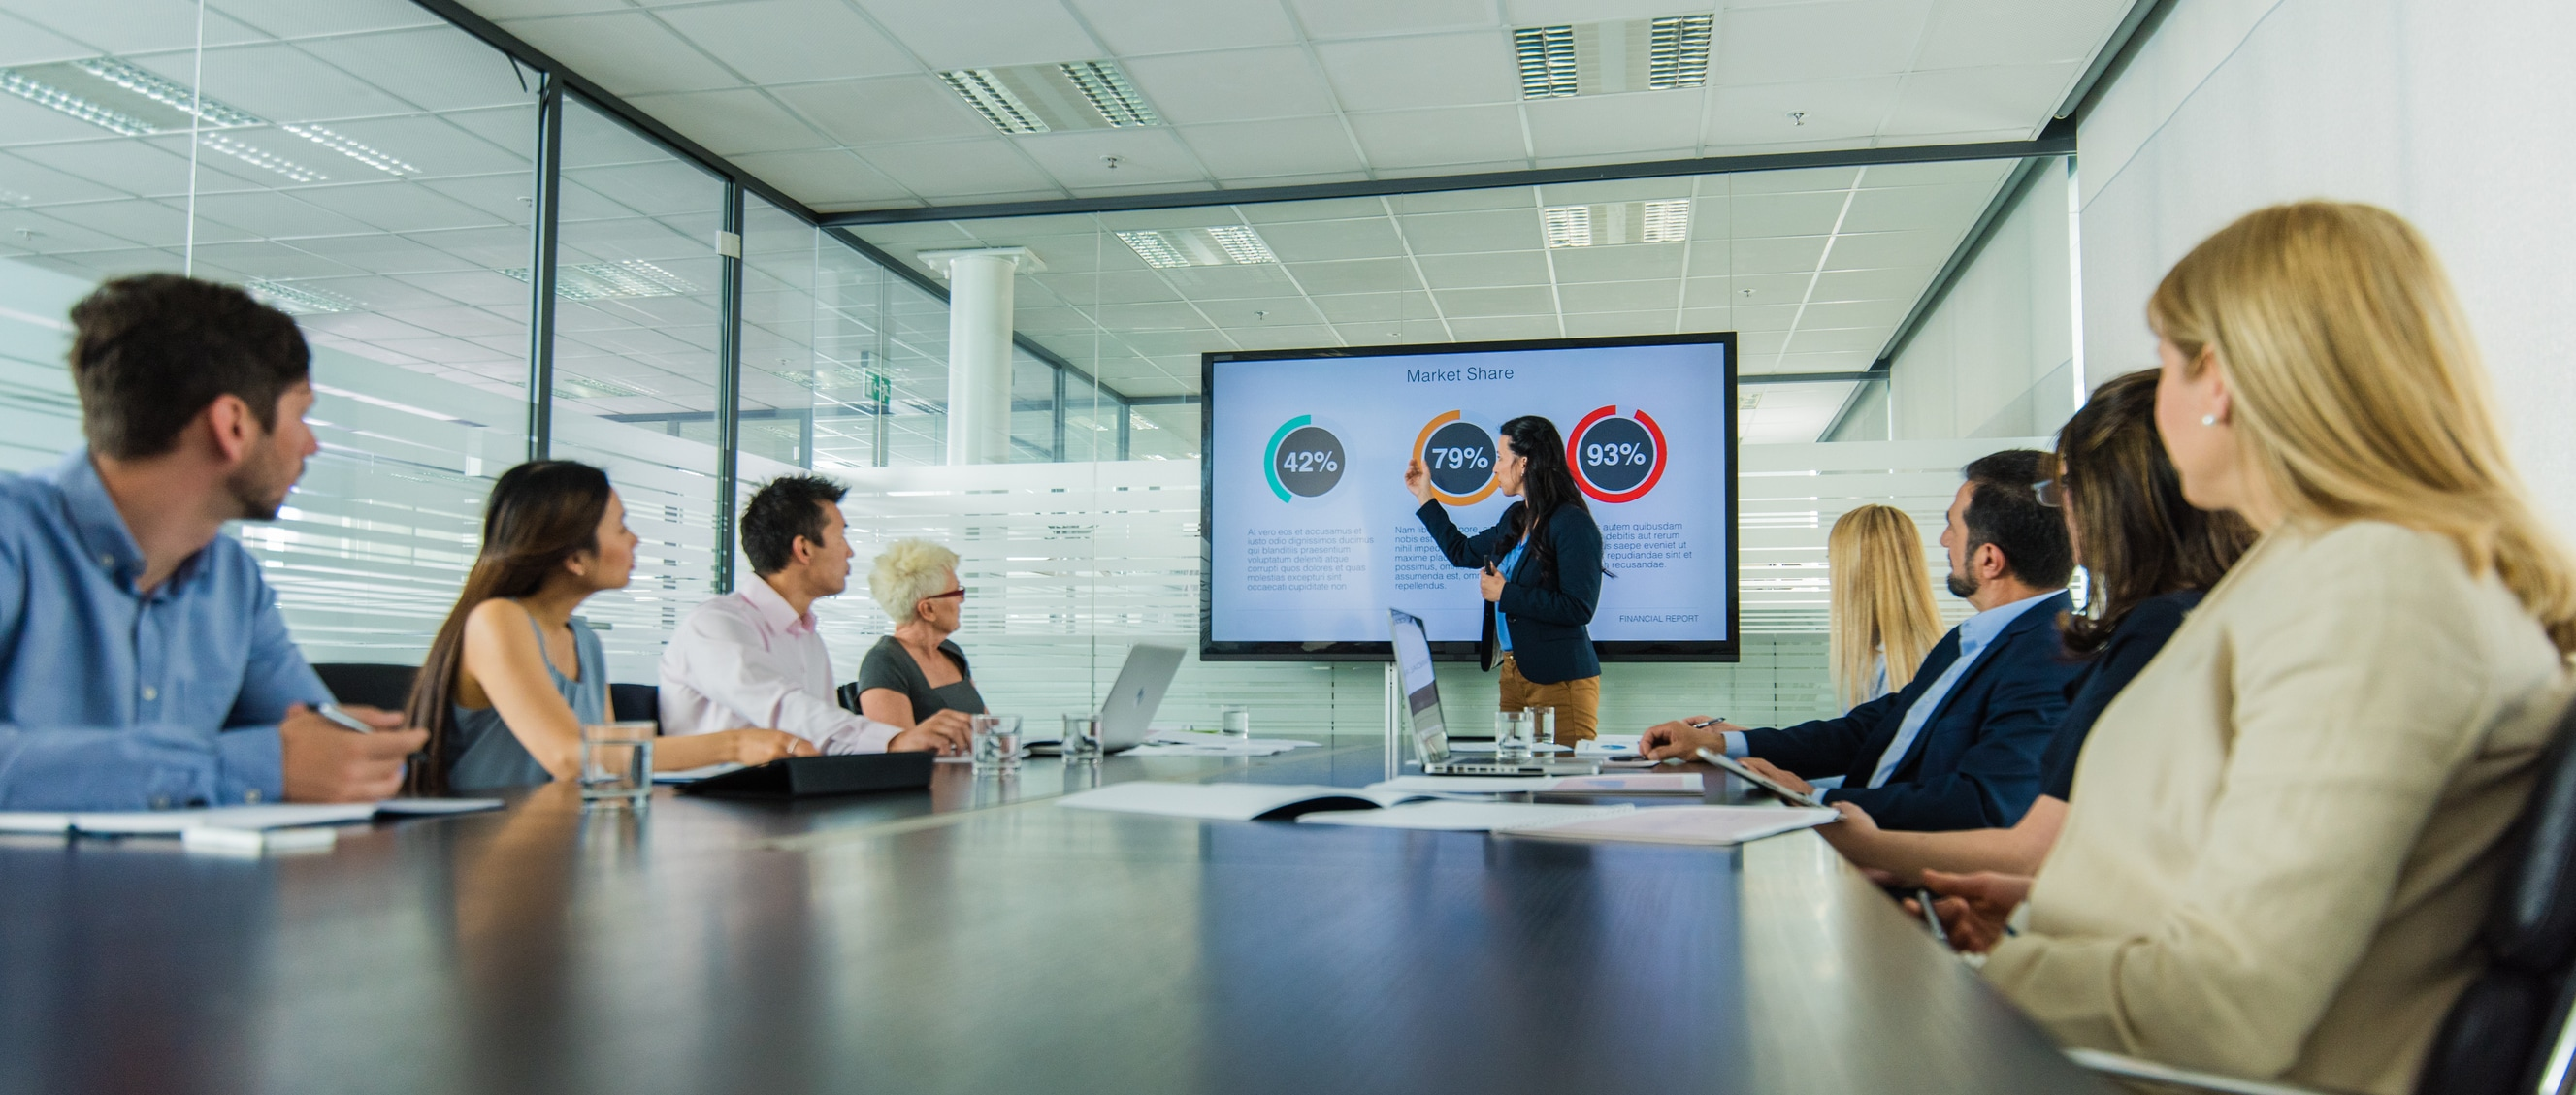 business presentation Business intelligence helps extract crucial facts from a vast amount of  unstructured data and transform them into actionable information that.